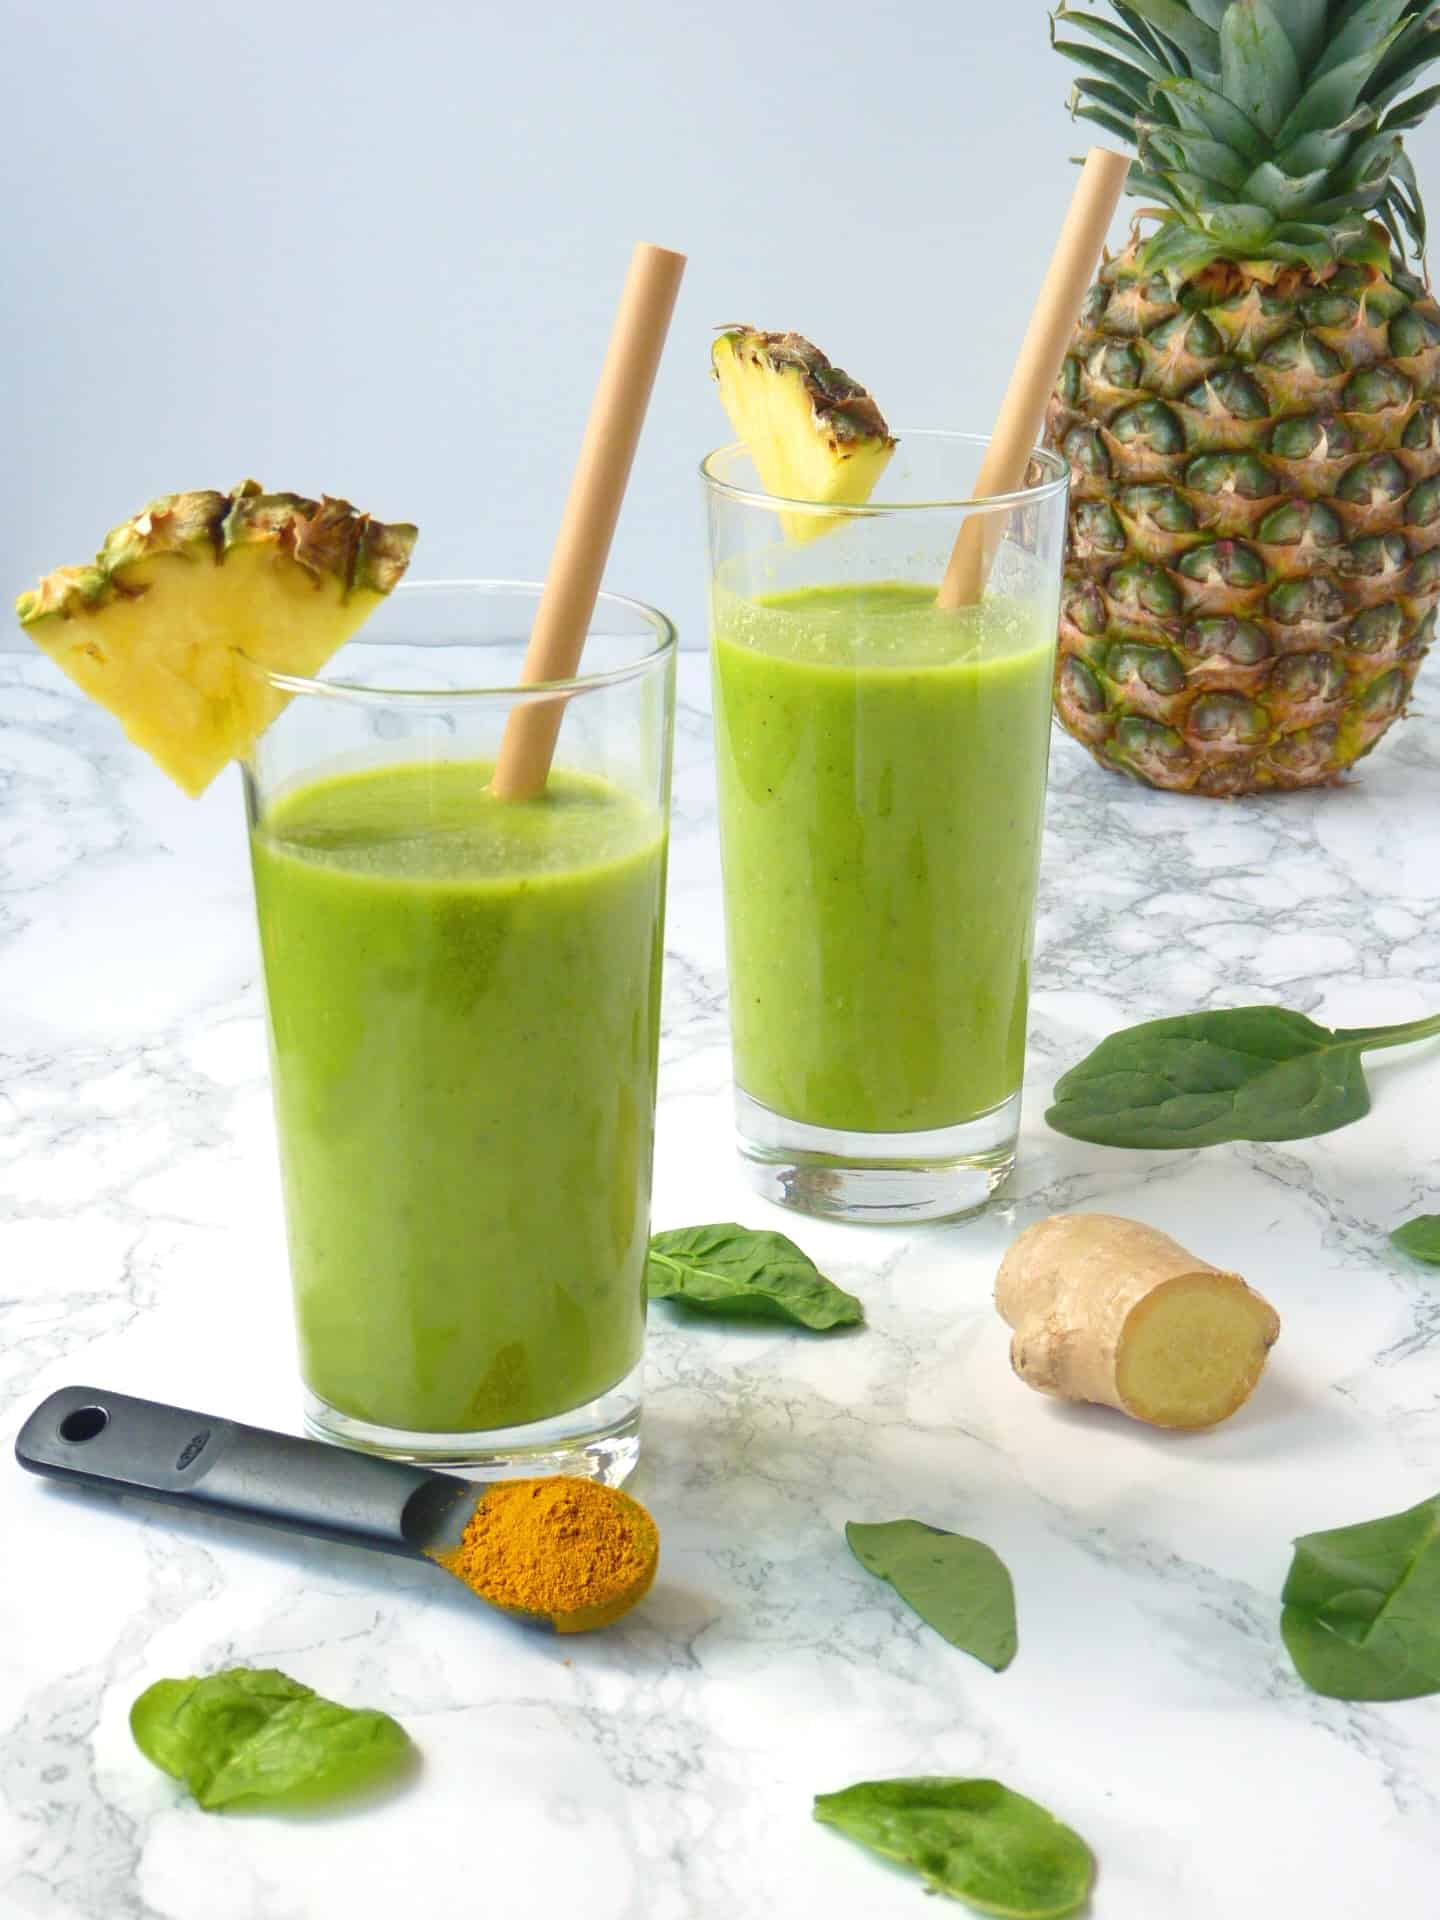 Pineapple Turmeric Anti-inflammatory smoothie